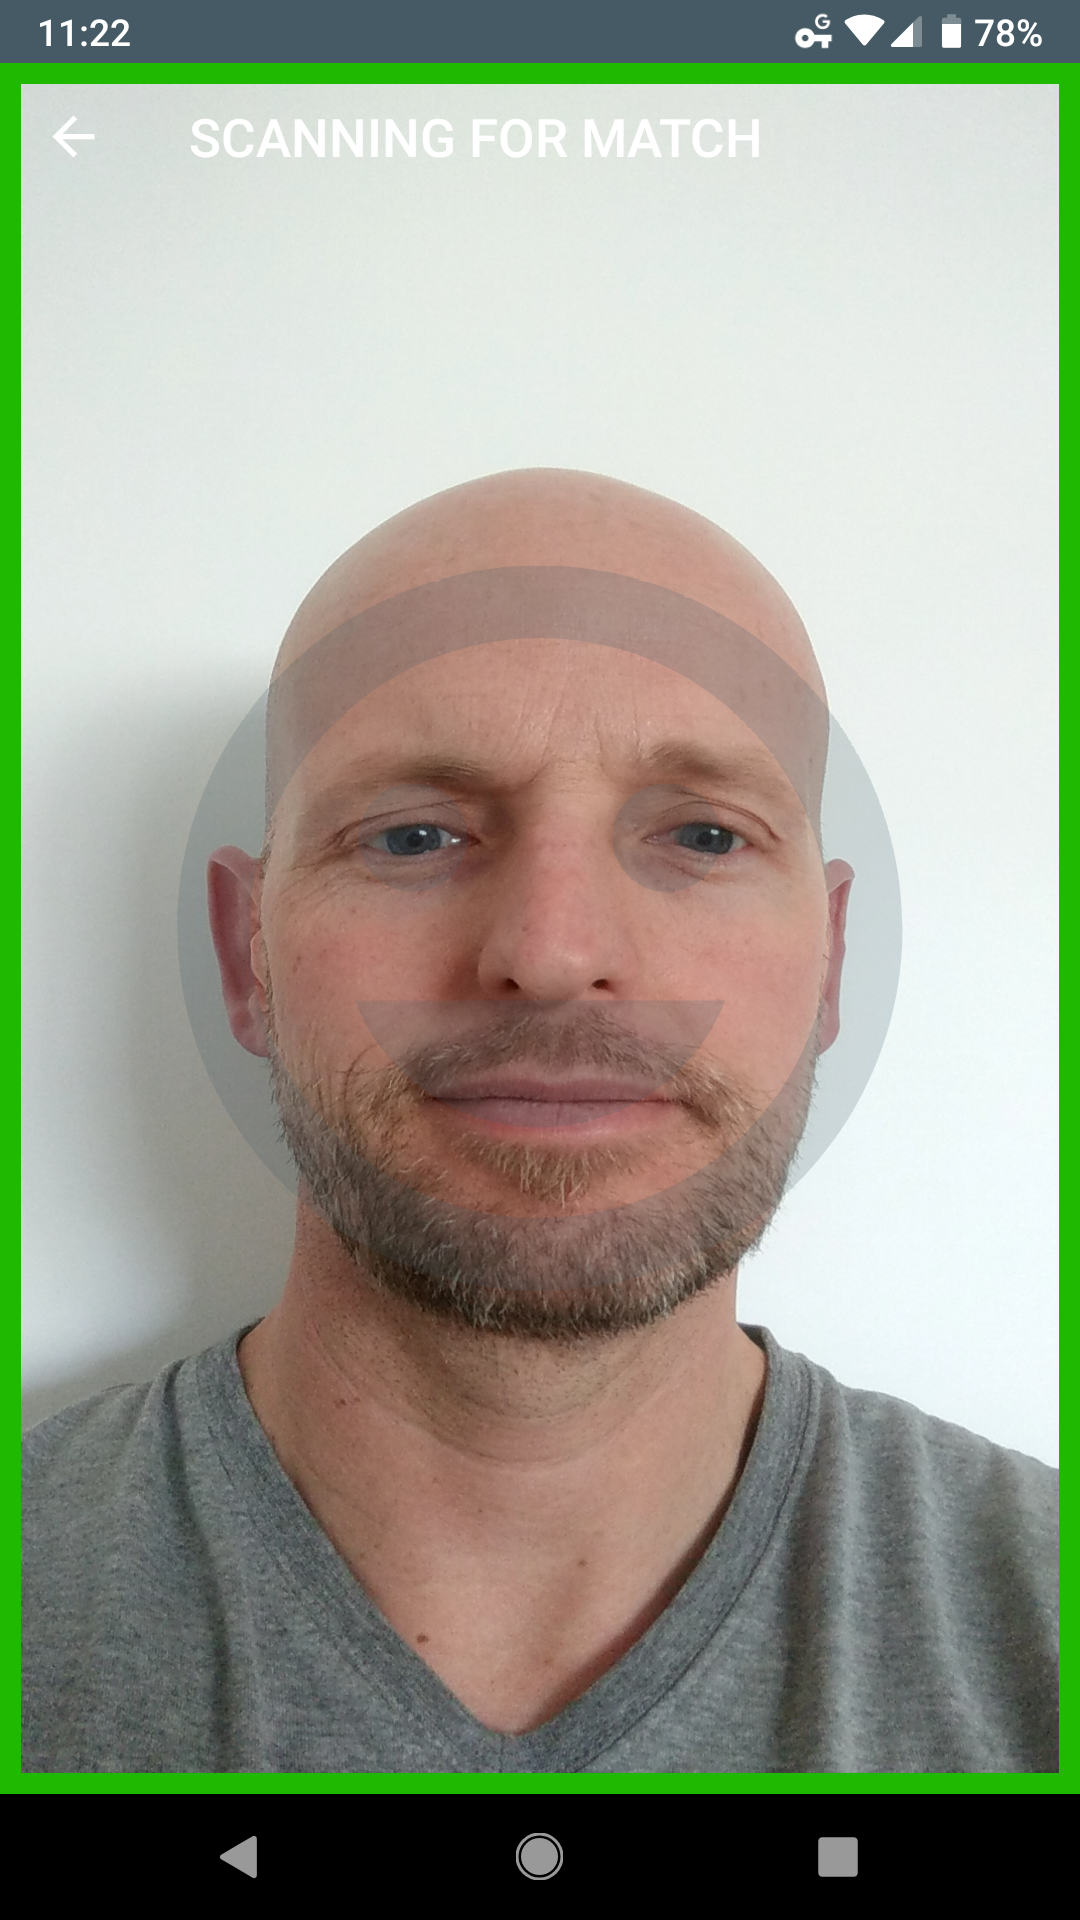 Mobile face recognition